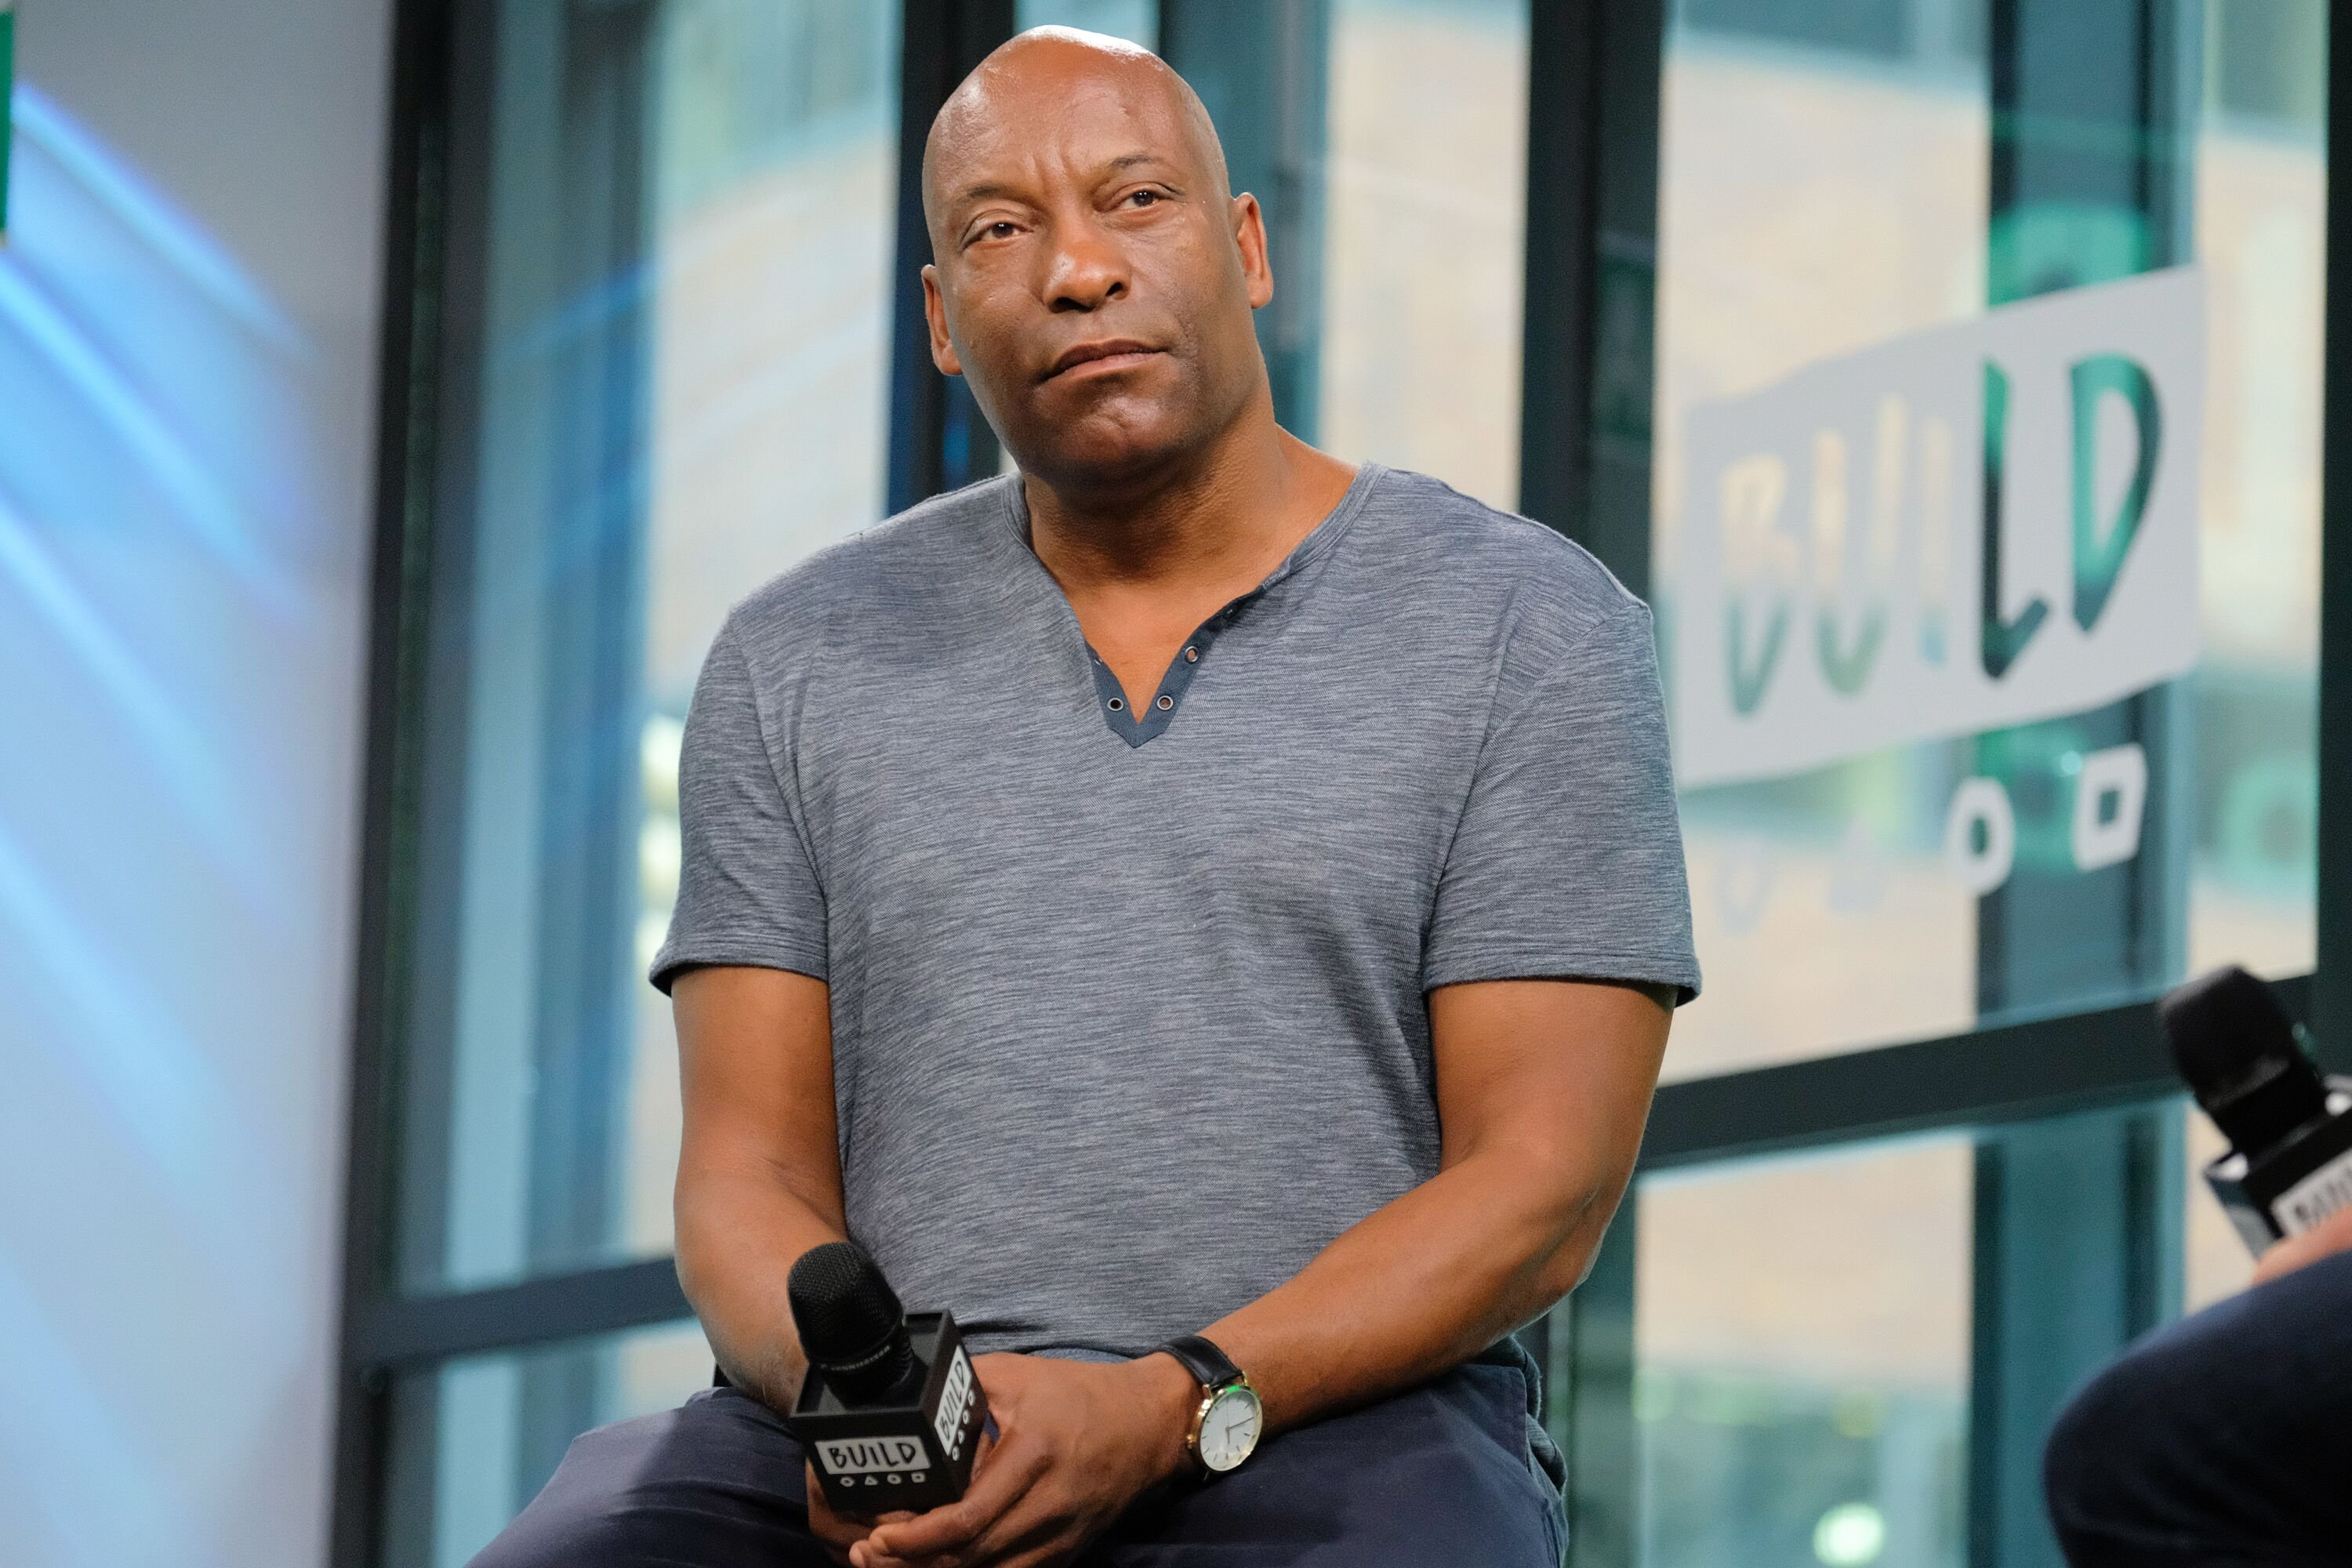 John Singleton at a guesting | Source: Getty Images/GlobalImagesUkraine